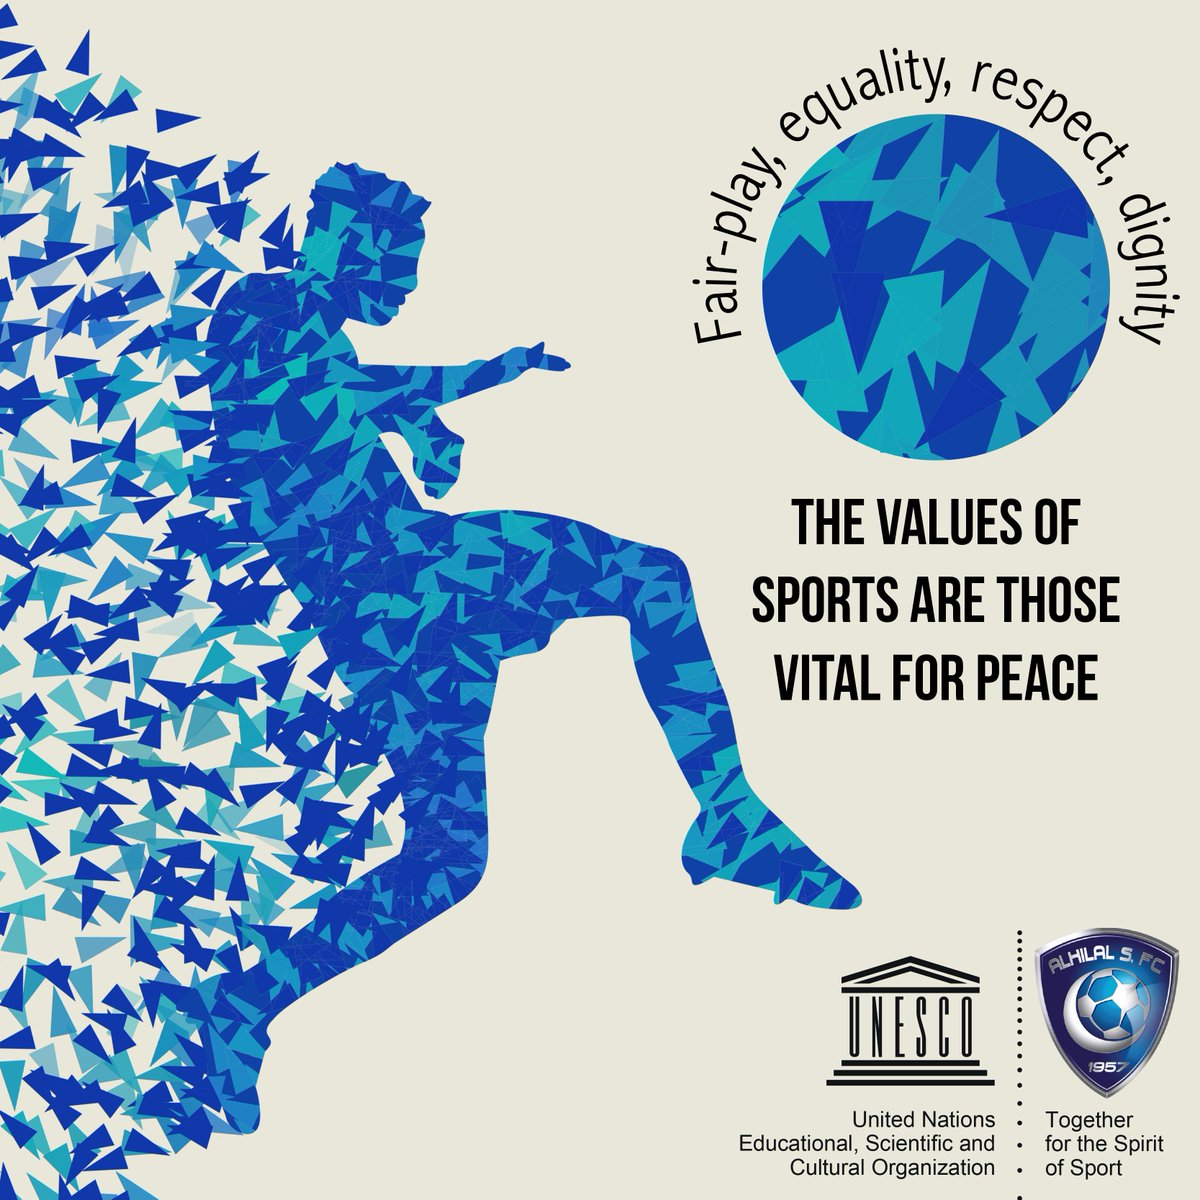 how can sports build peace in